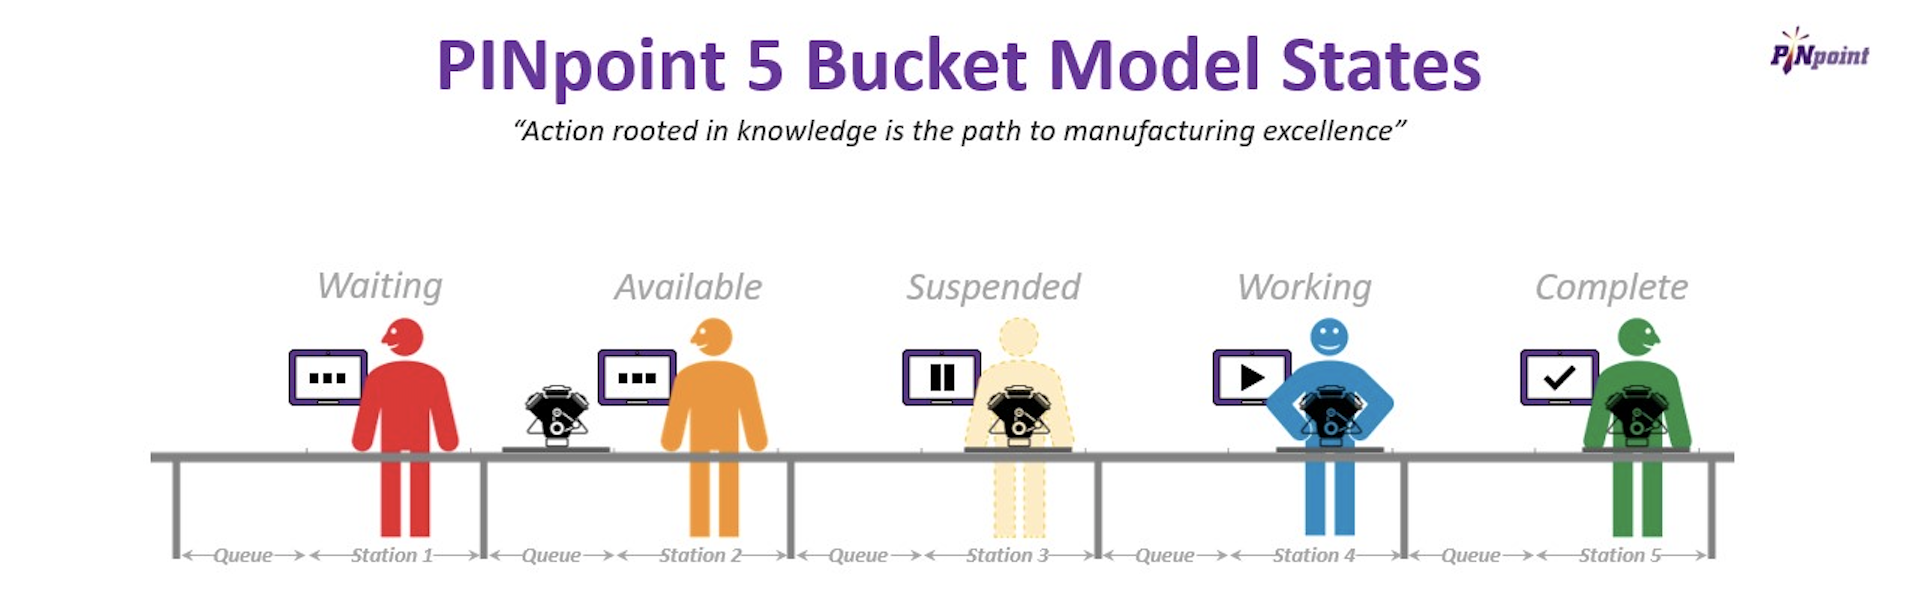 PINpoint 5 Bucket Model States